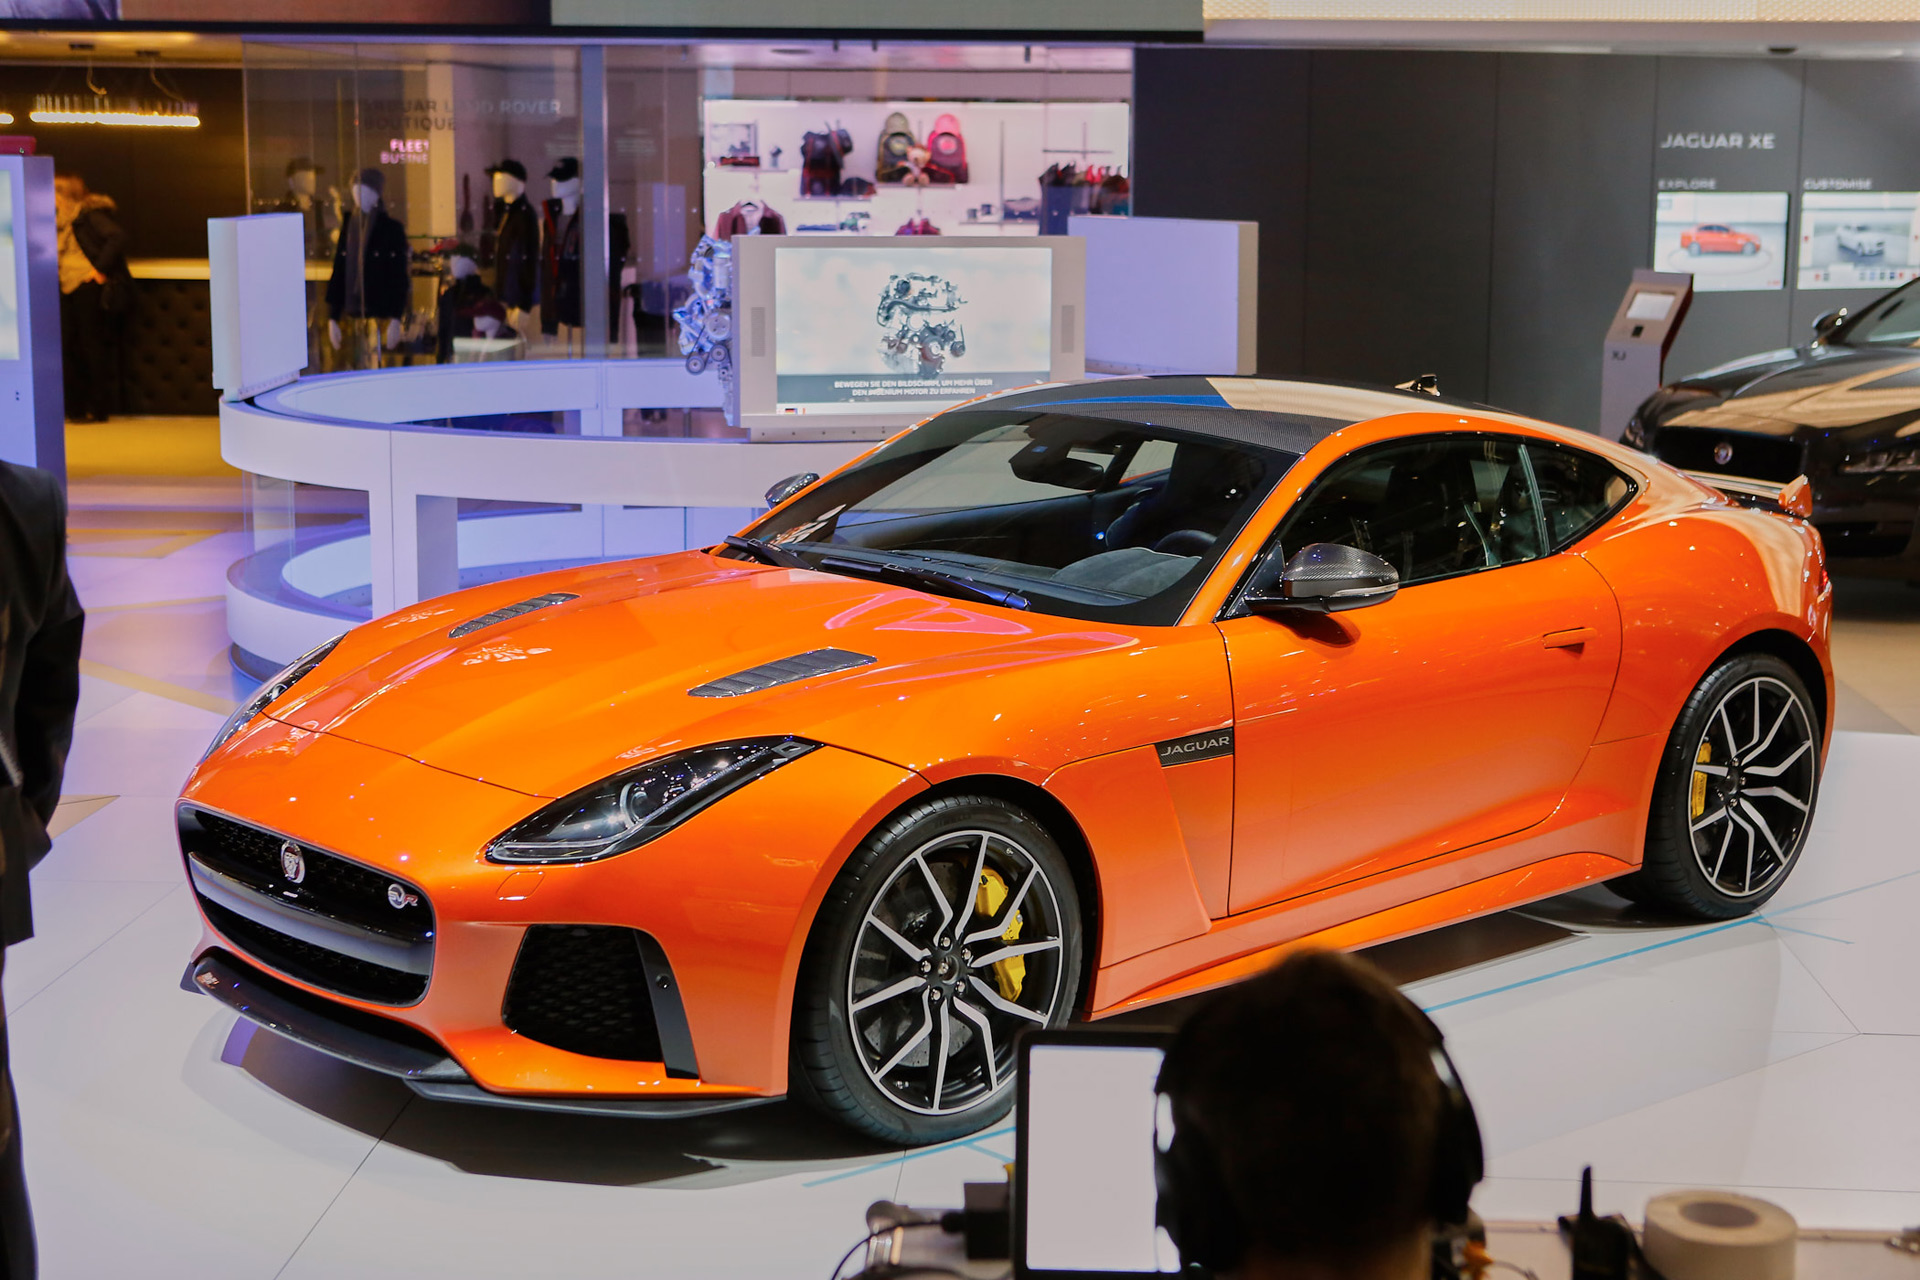 2017 jaguar f type svr revealed priced from 126 945. Black Bedroom Furniture Sets. Home Design Ideas